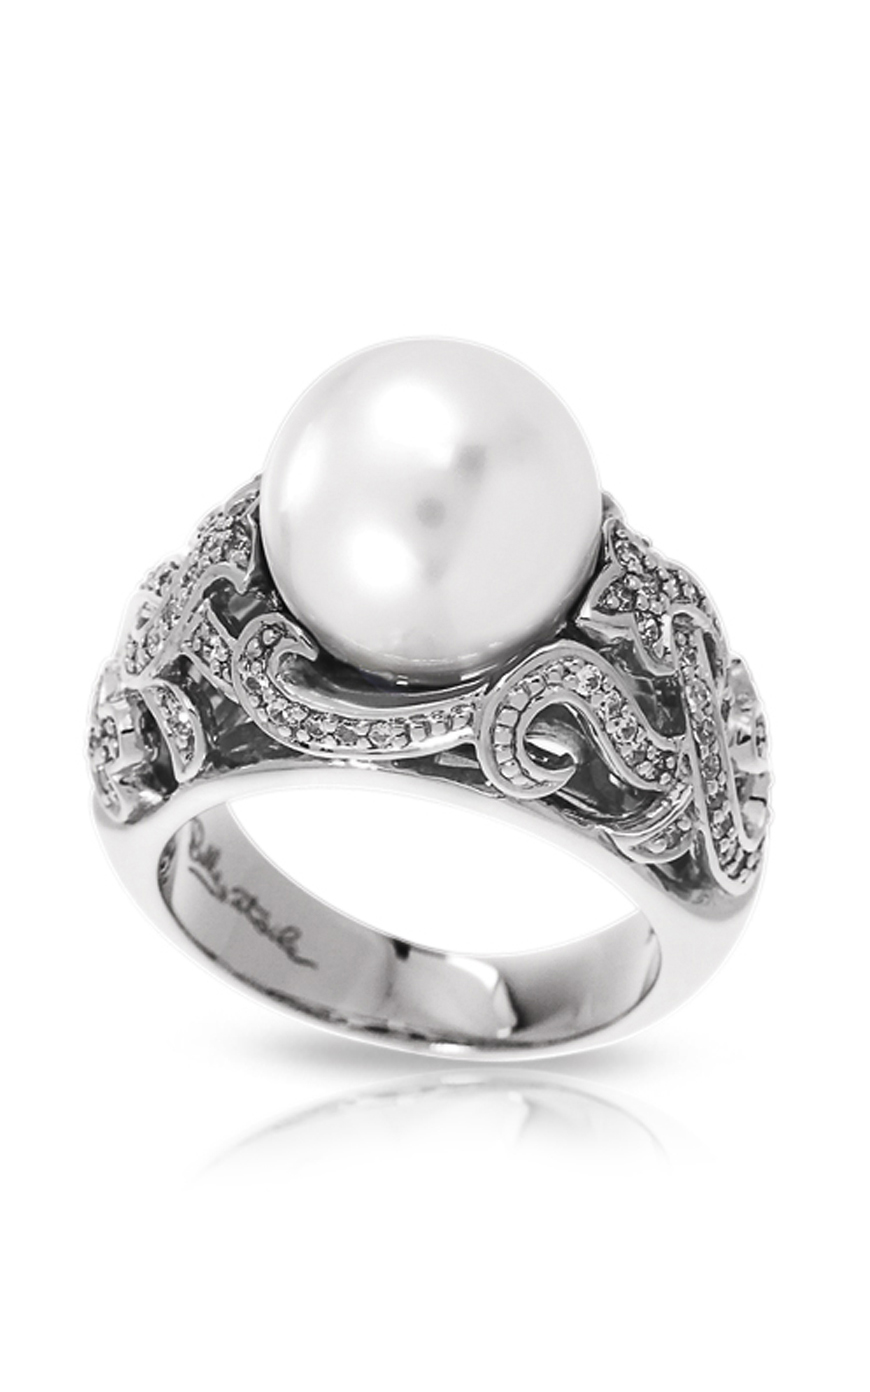 Belle Etoile Fiona White Ring 01031320102-6 product image